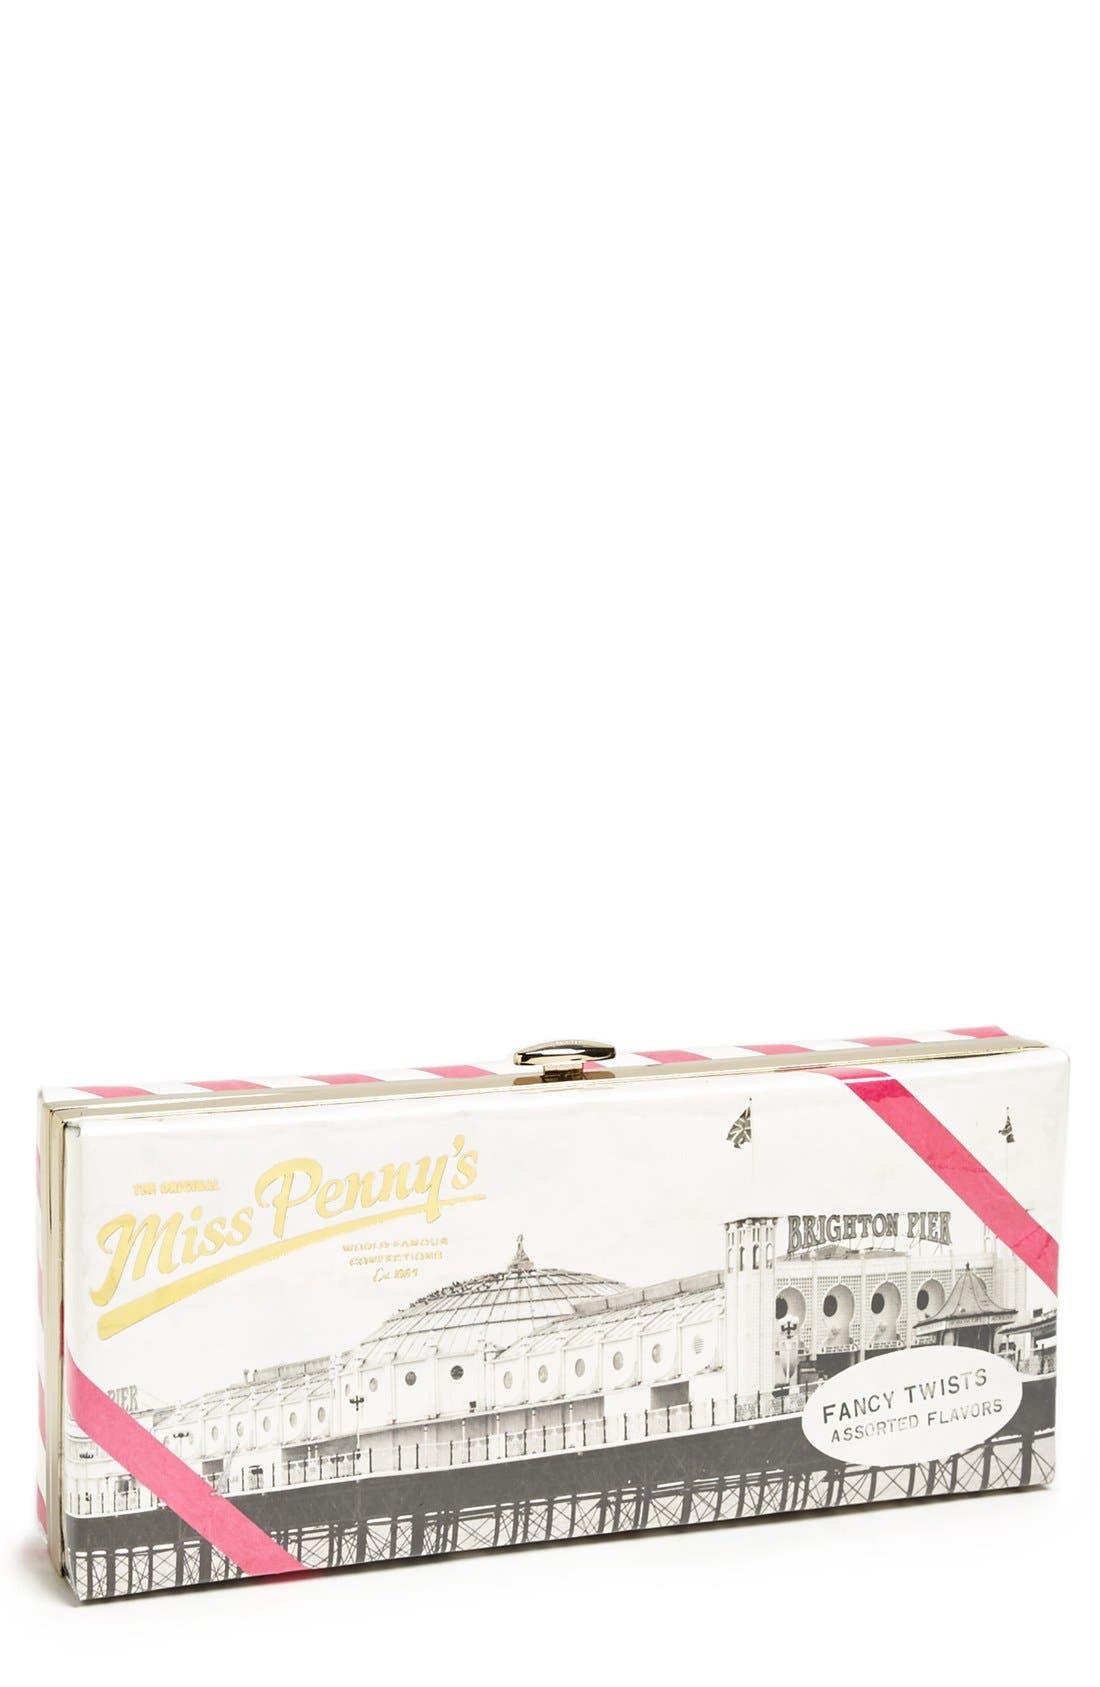 Main Image - kate spade new york 'the original miss penny's ' box clutch